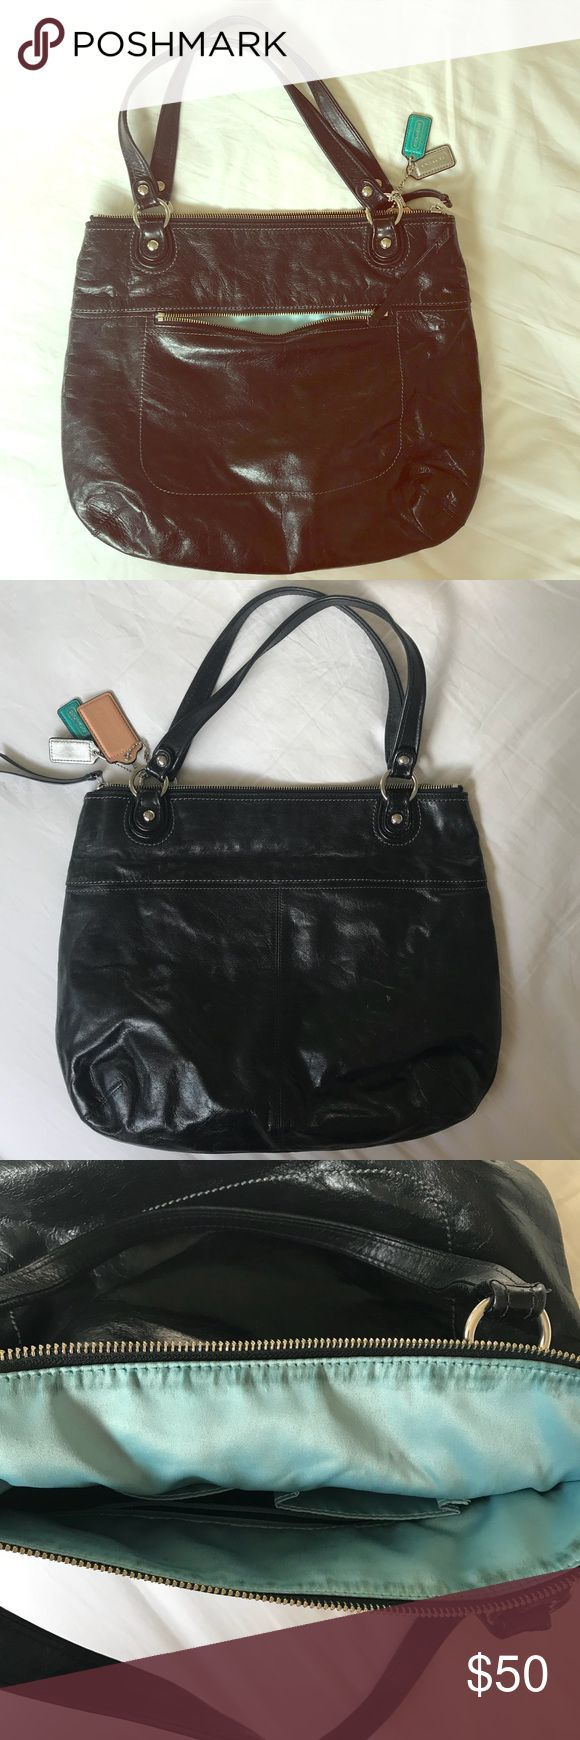 Black Coach Purse Large Black Coach Purse. Purchased a while ago, no longer have original tags. Authentic Coach Purse. Baby Blue silk interior, there is some slight discoloration on the interior around the top zipper portion. Zipper pocket in front of purse. Some faint wear on back of purse (looks like little white wear patch). Coach Bags Shoulder Bags